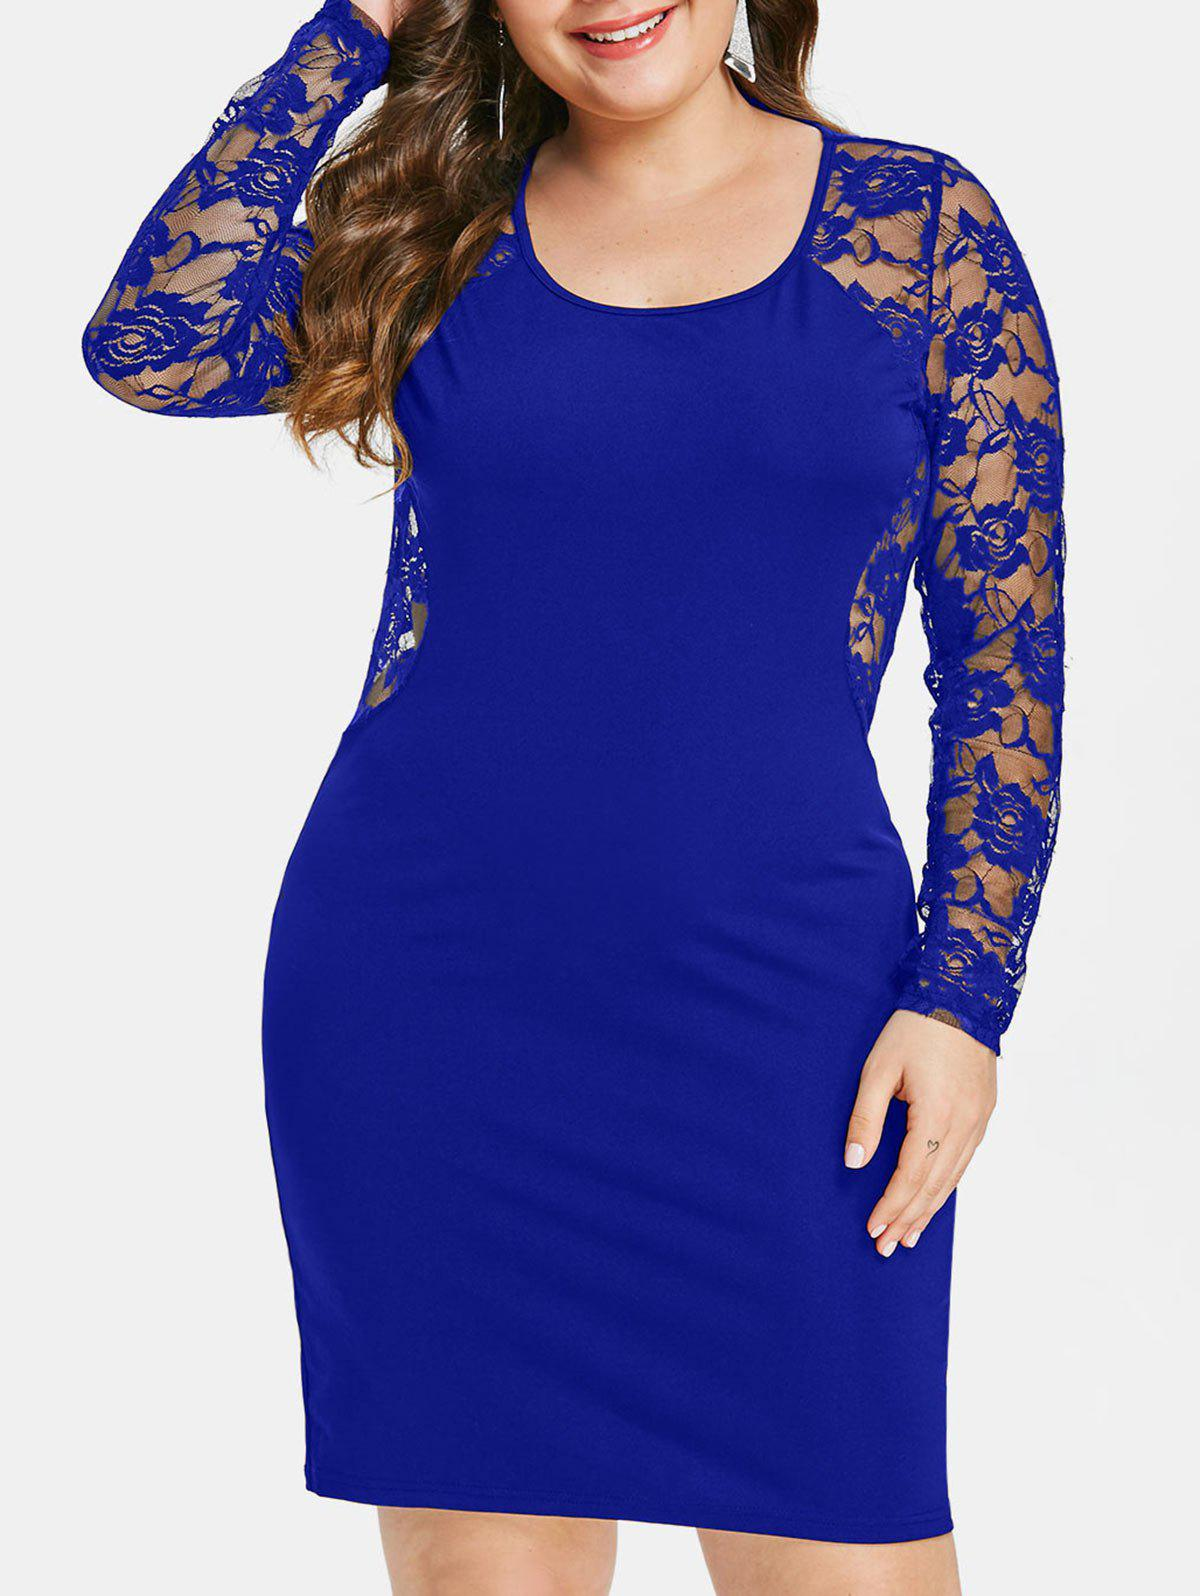 Plus Size See Through Lace Insert Bodycon Dress